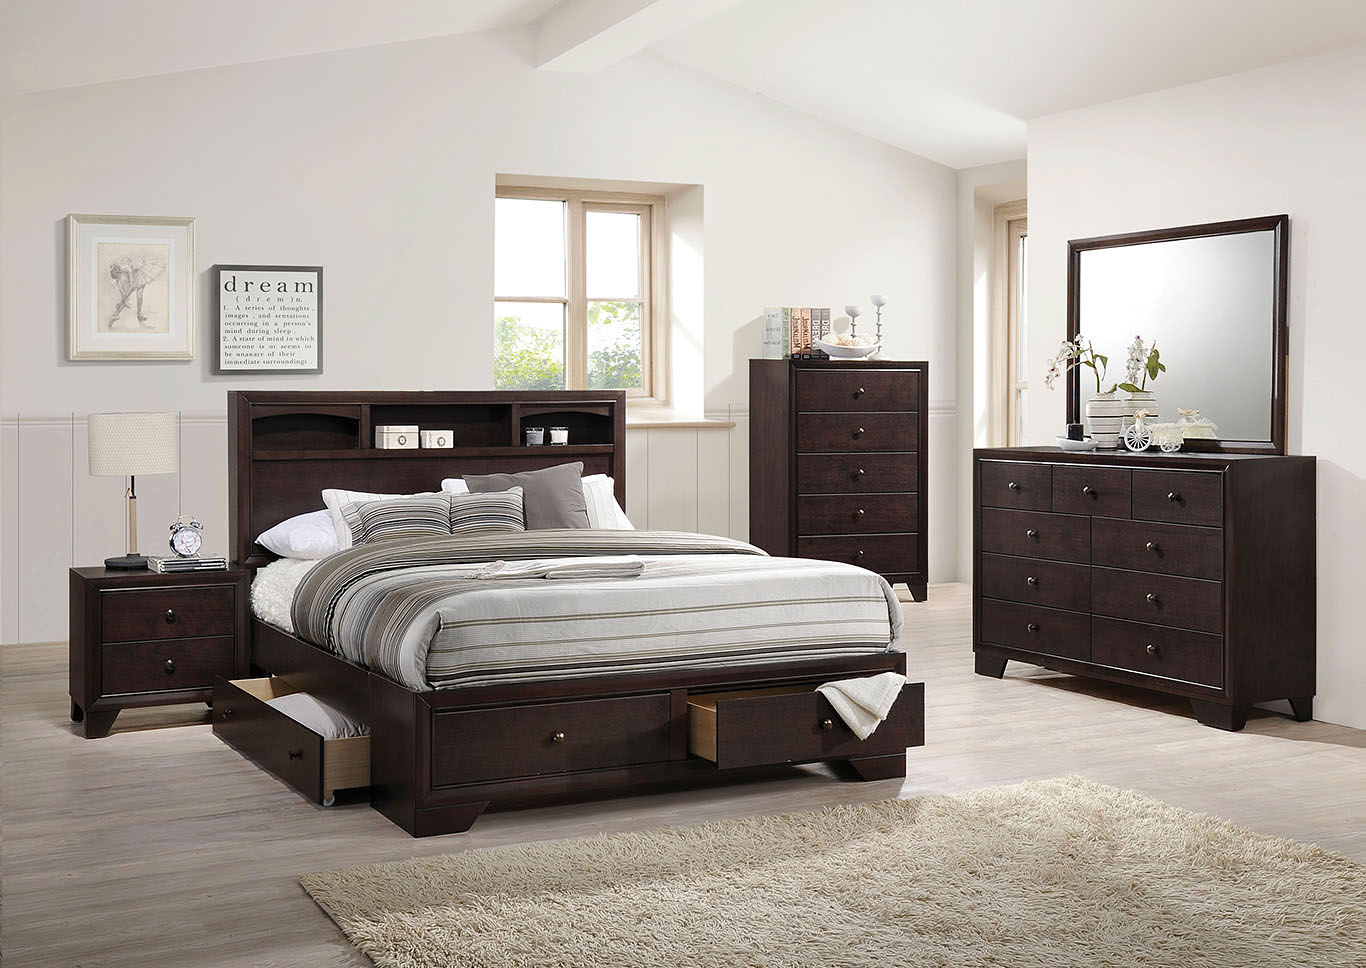 Madison II Espresso Queen Storage Bed w/Dresser and Mirror,Acme